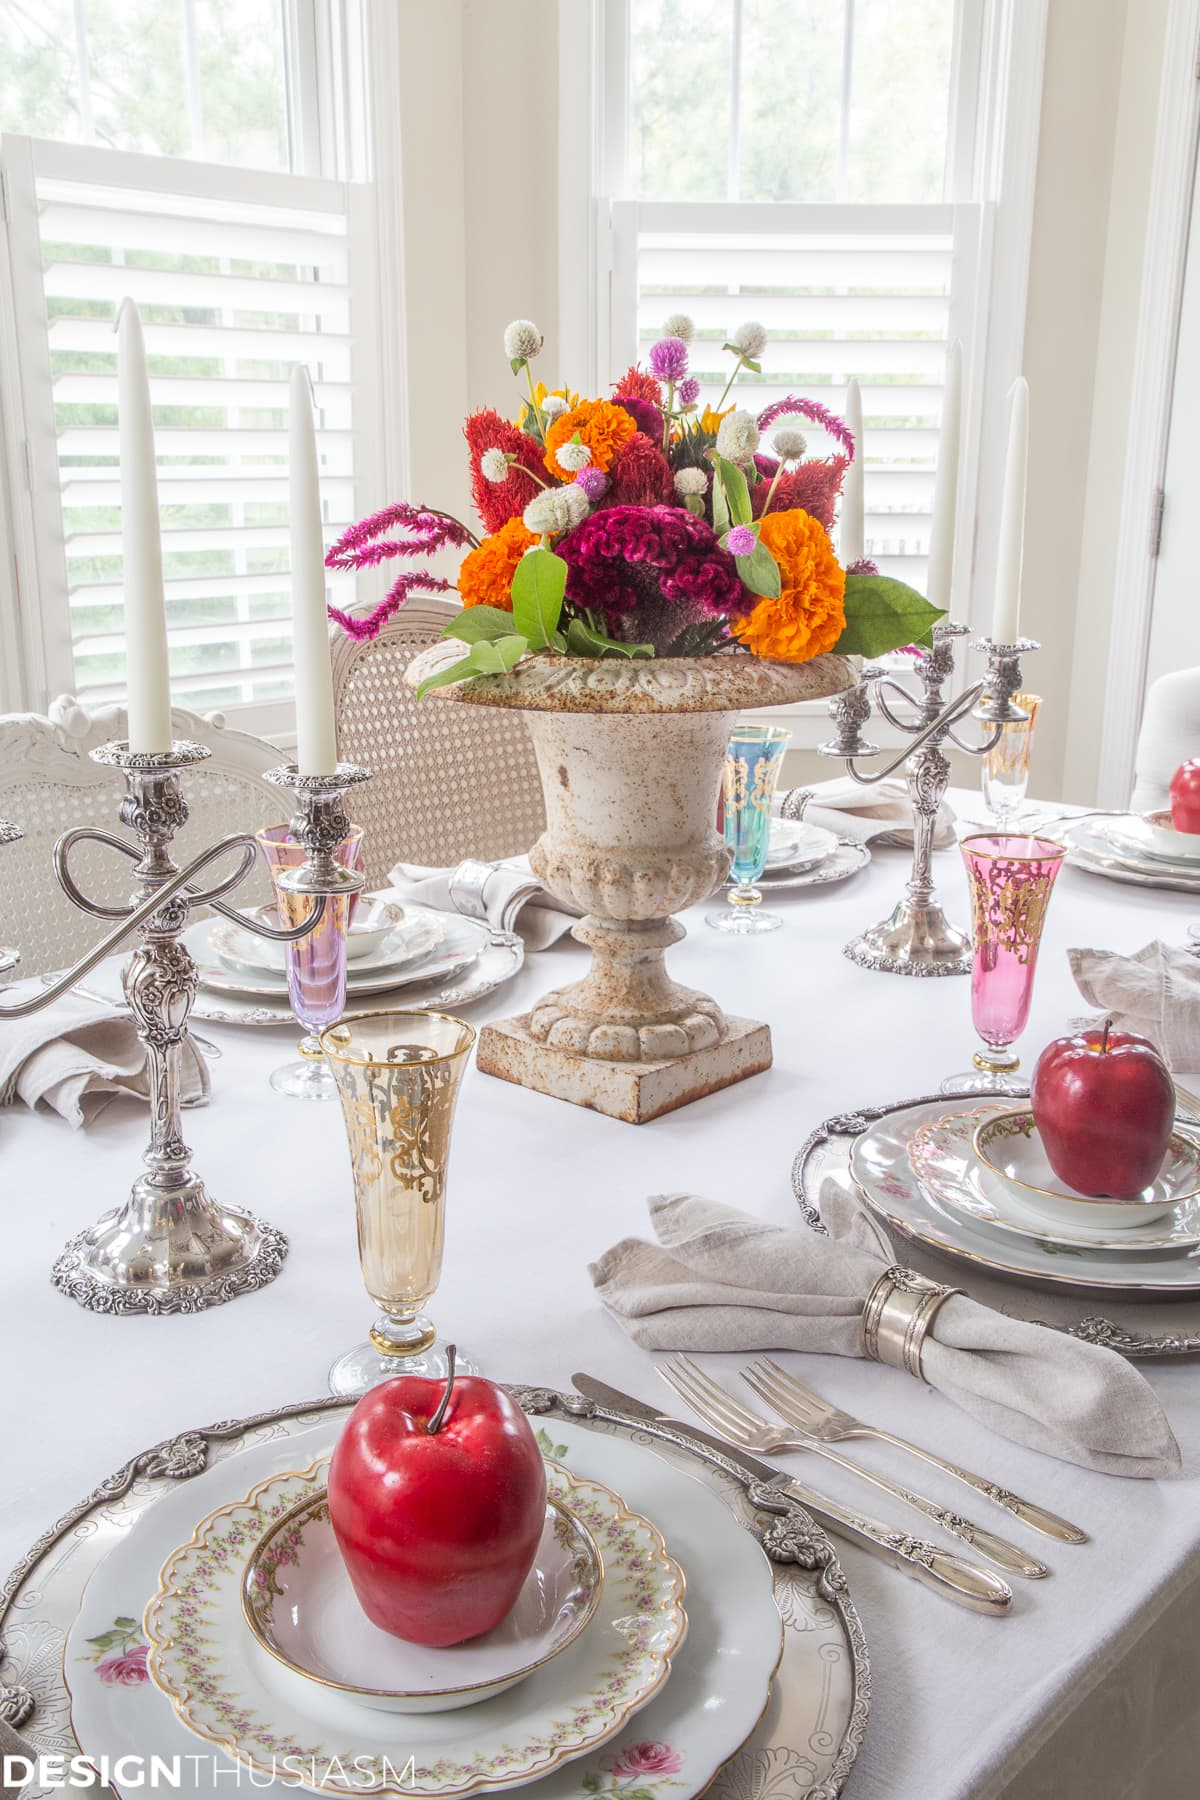 fall table setting with apple decor and colorful glasses